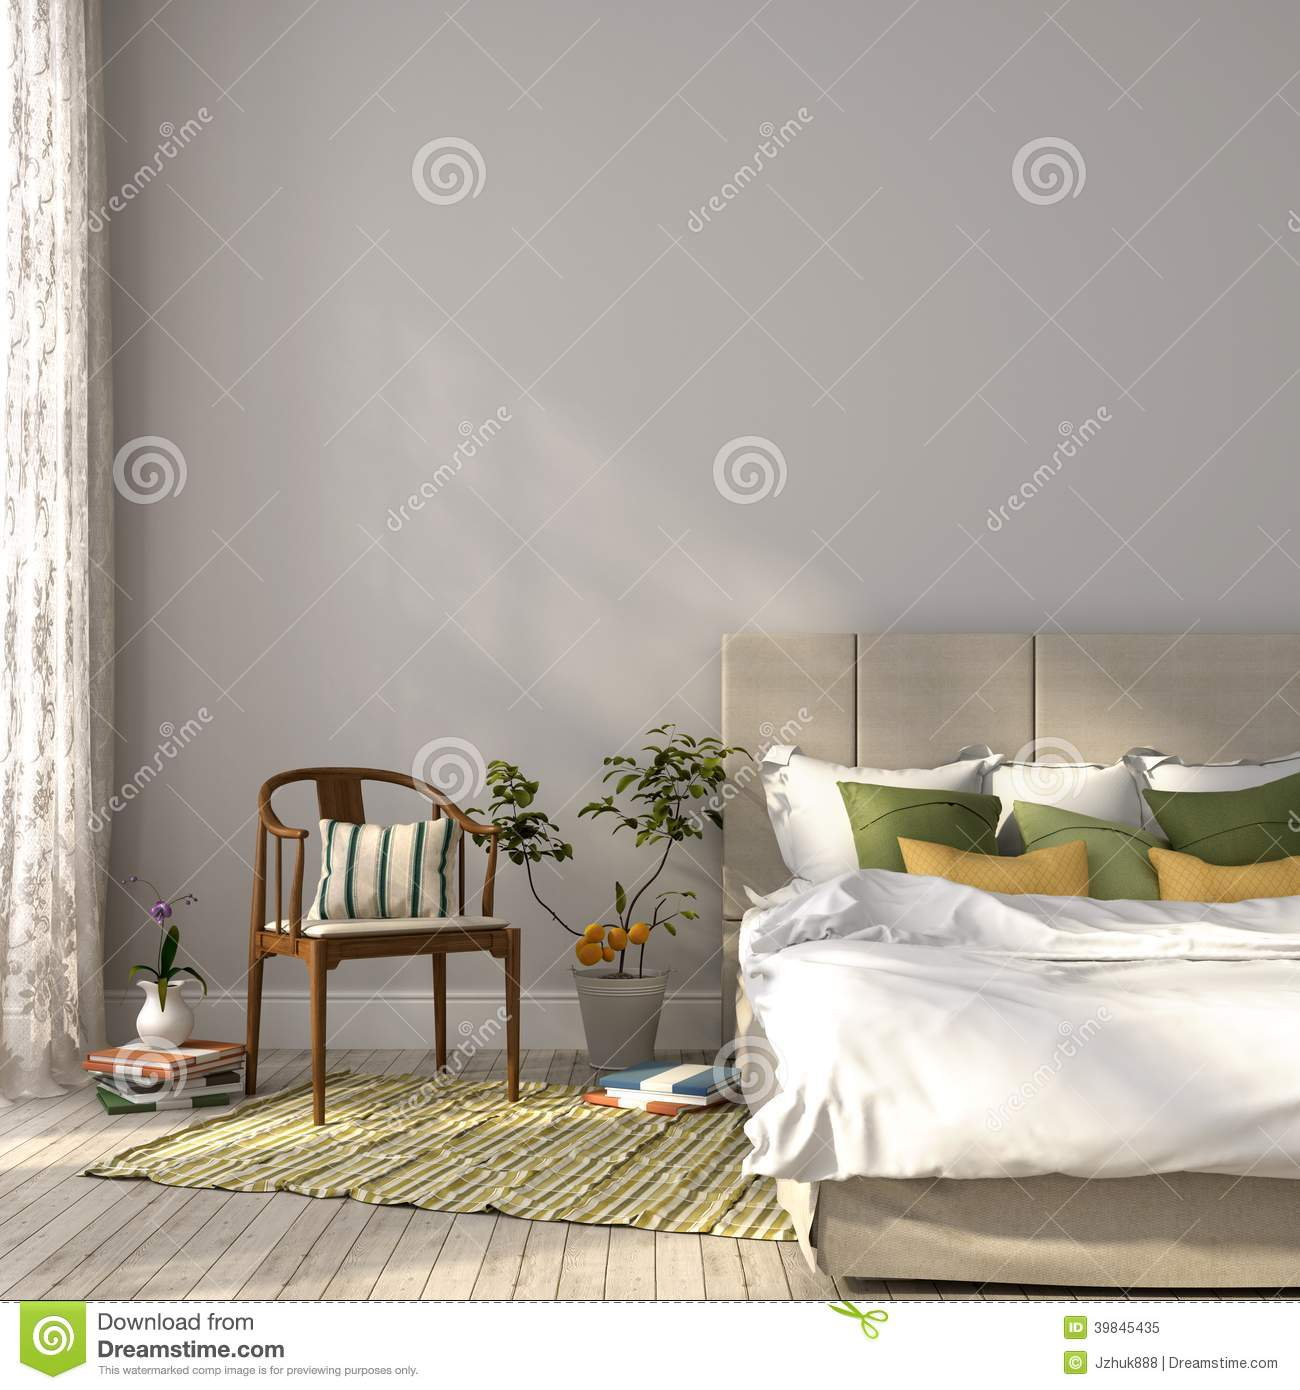 Bedroom Colors Pictures Mood Lighting Bedroom Classic Bedroom Ceiling Design Bedroom Ideas Hgtv: Beige Bed With Green Decor Stock Image. Image Of Suite